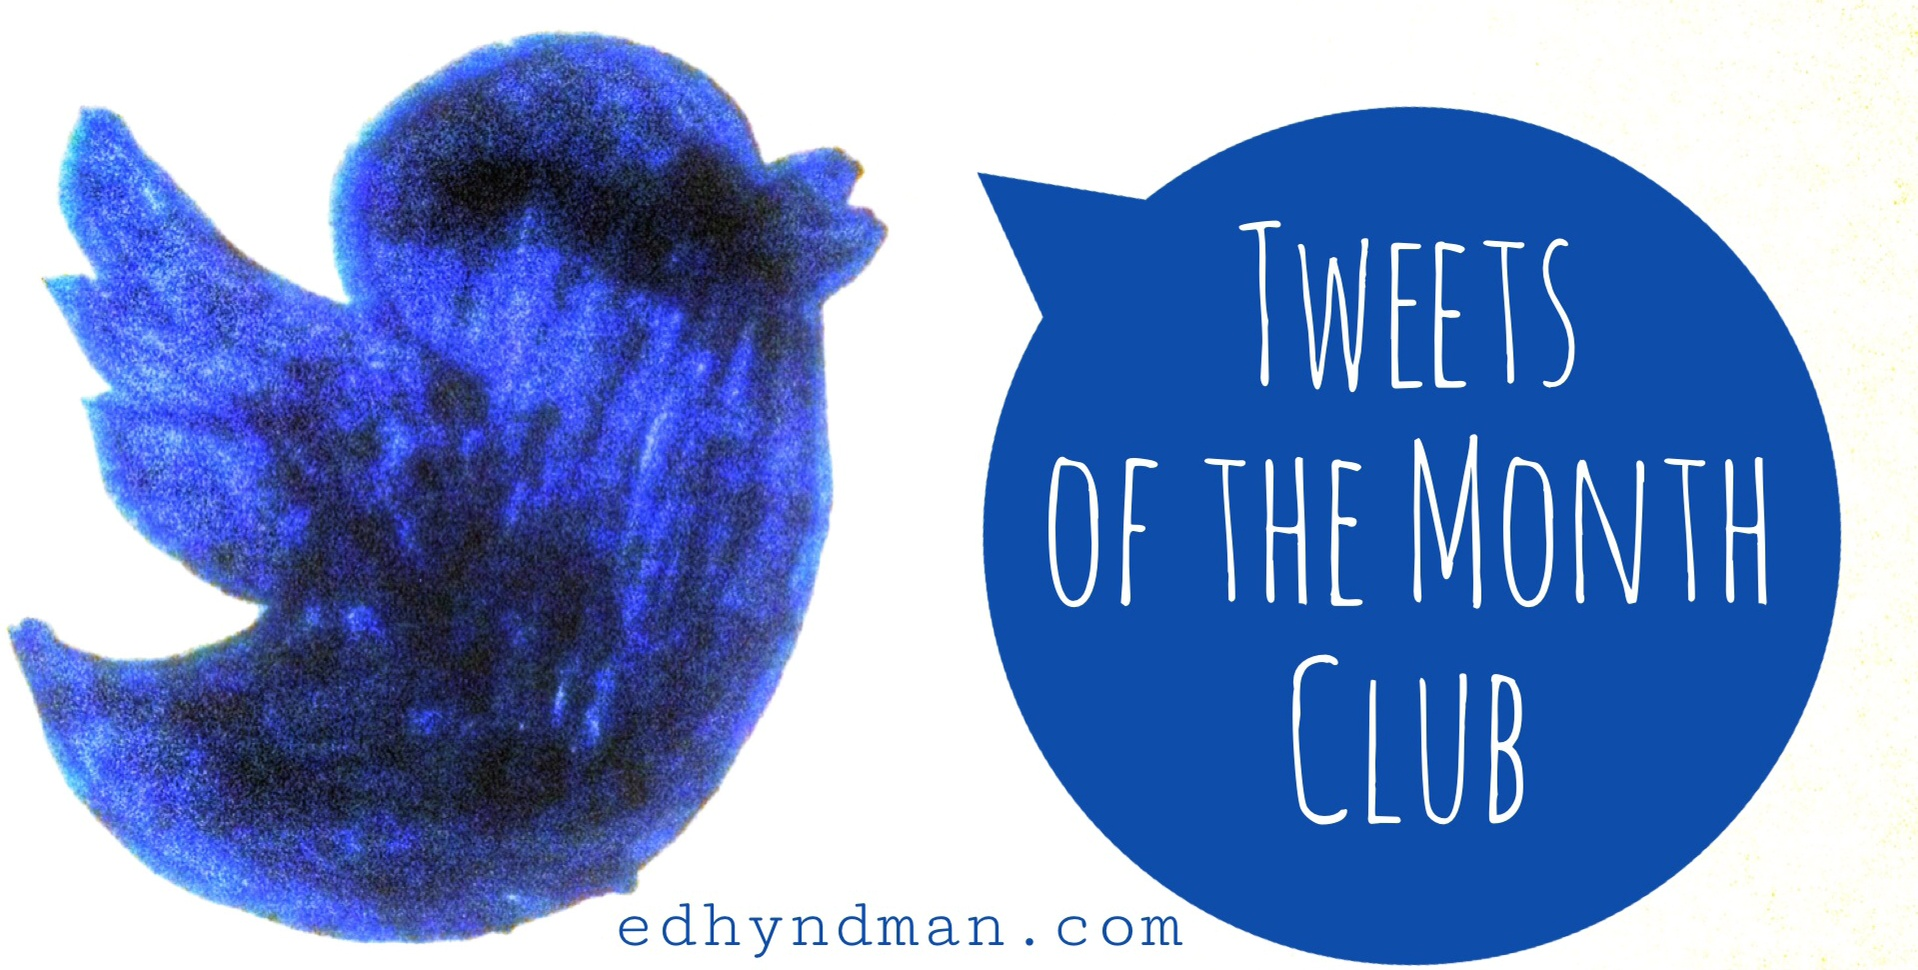 Tweets of the Month Club | June 2017